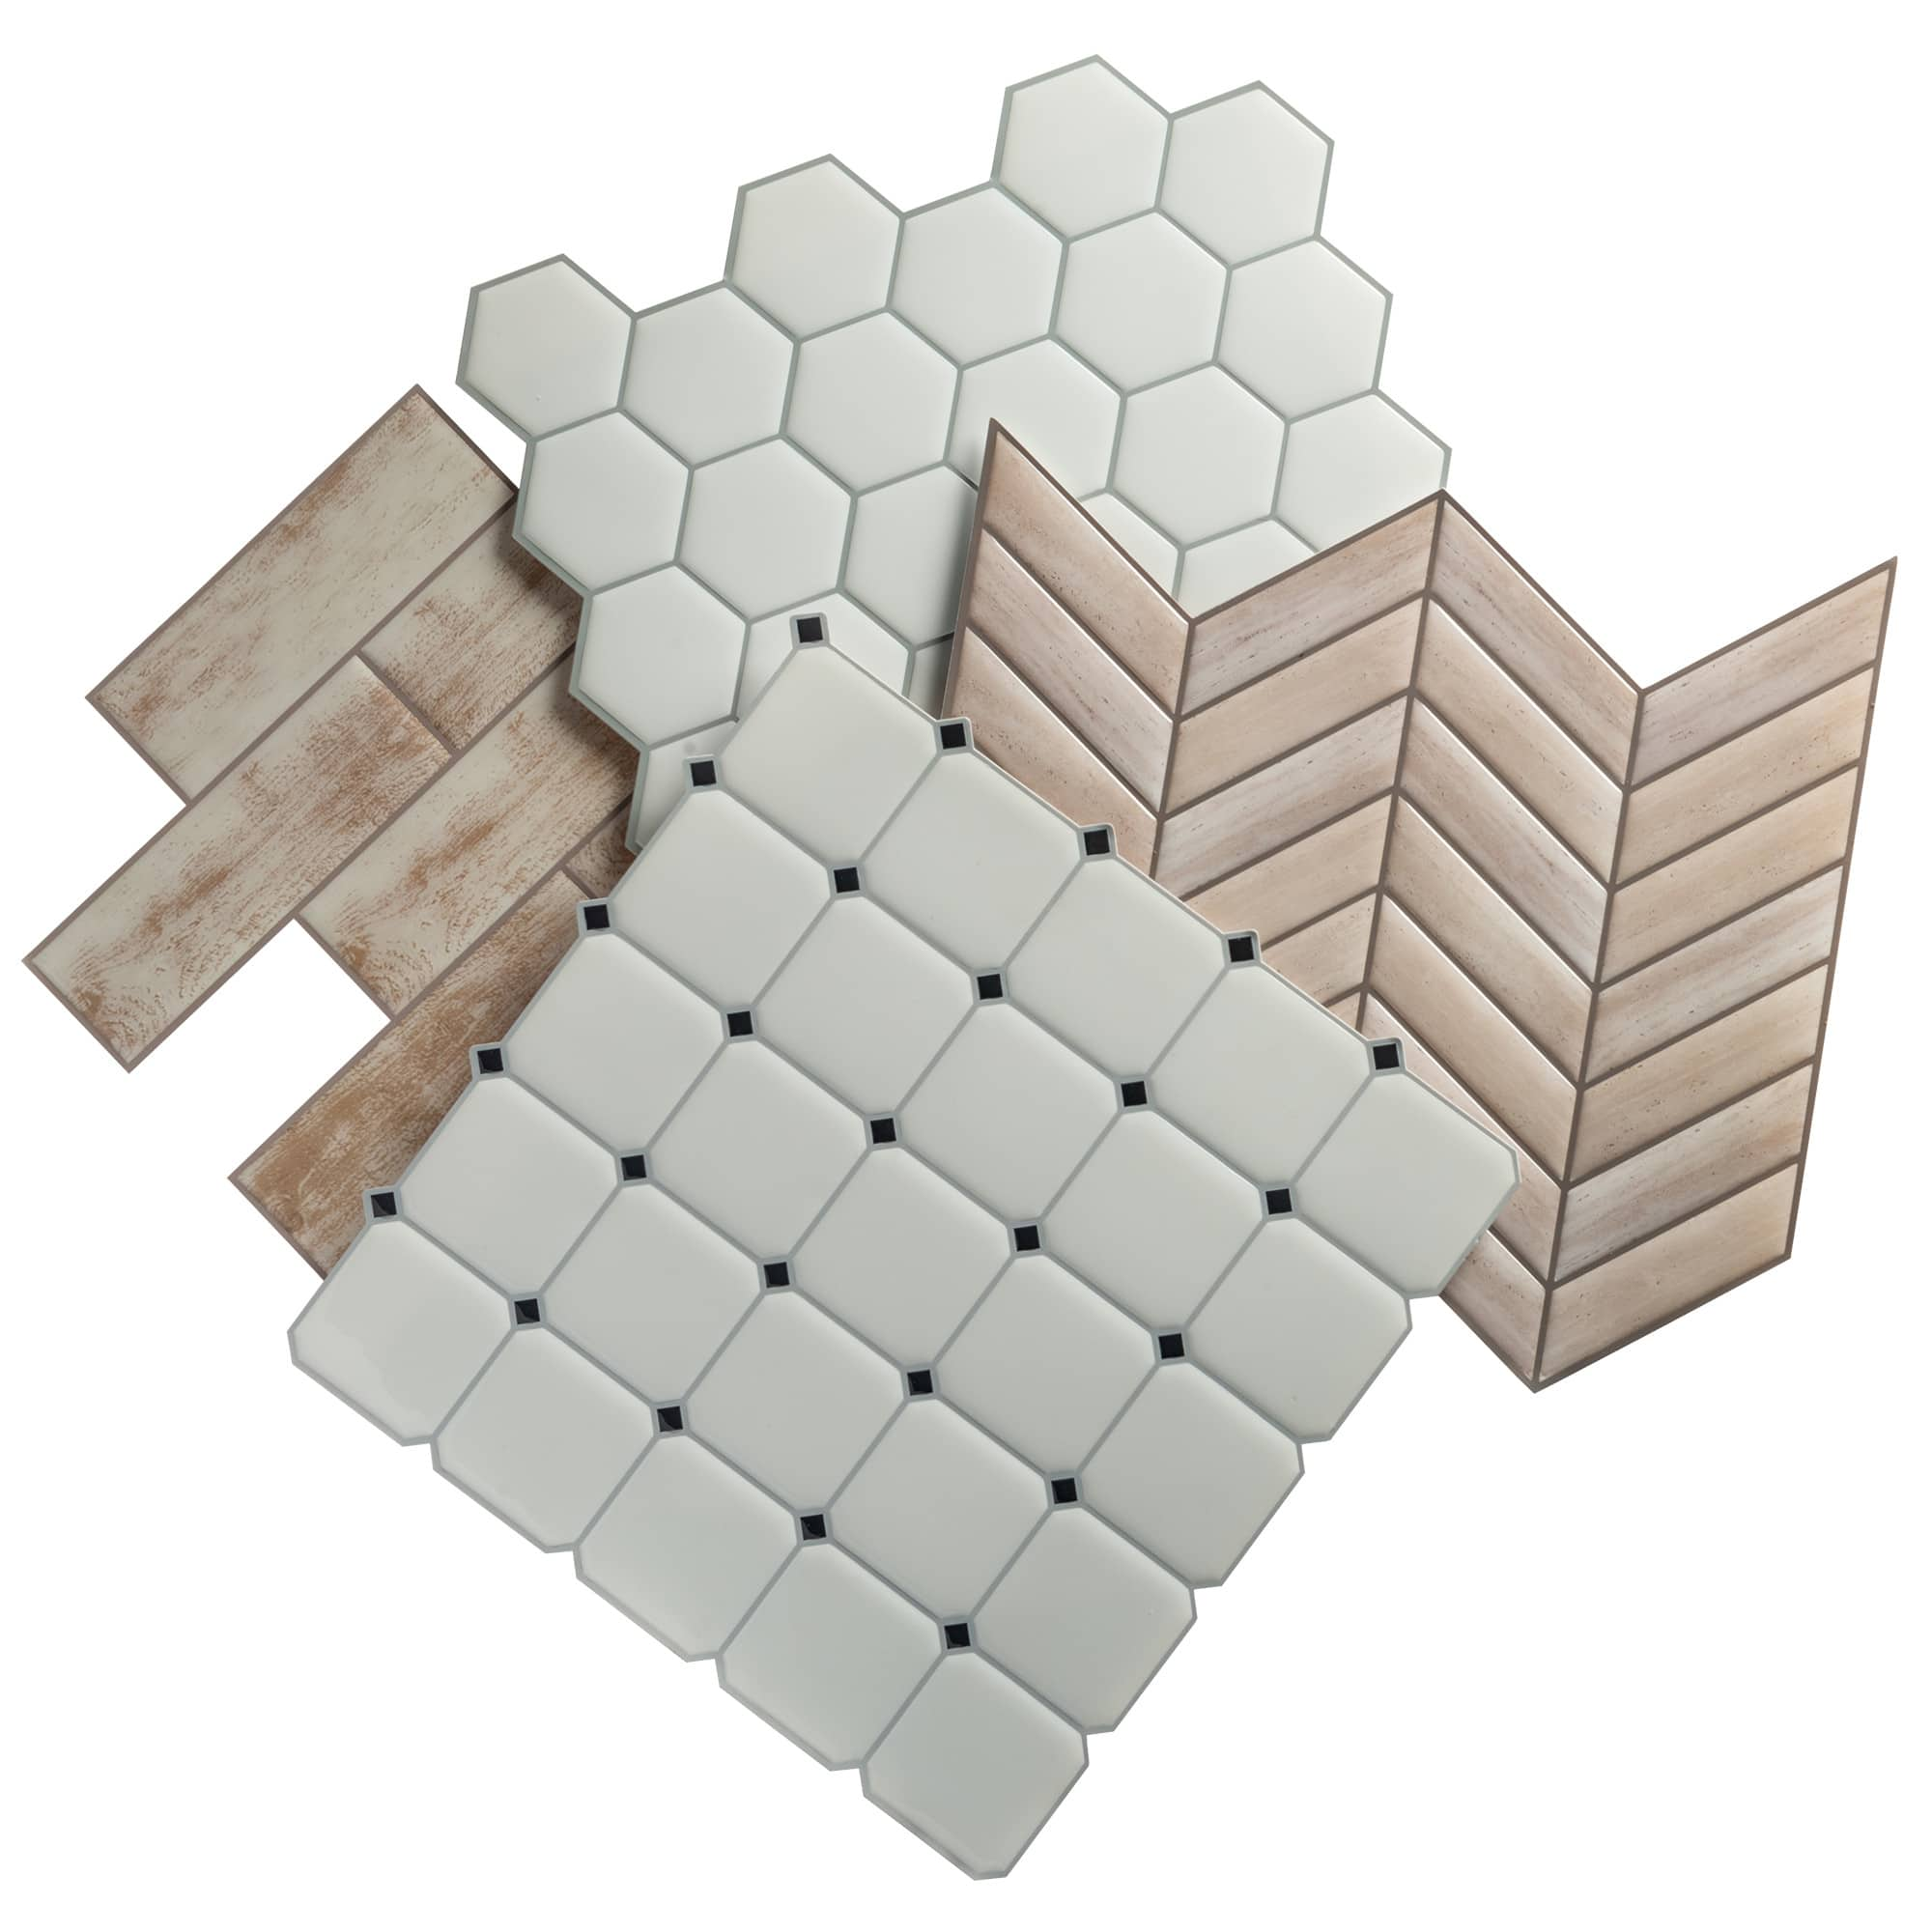 32-Pack: RoomMates StickTiles Peel and Stick Wall & Backsplash Tiles at Meh.com $29